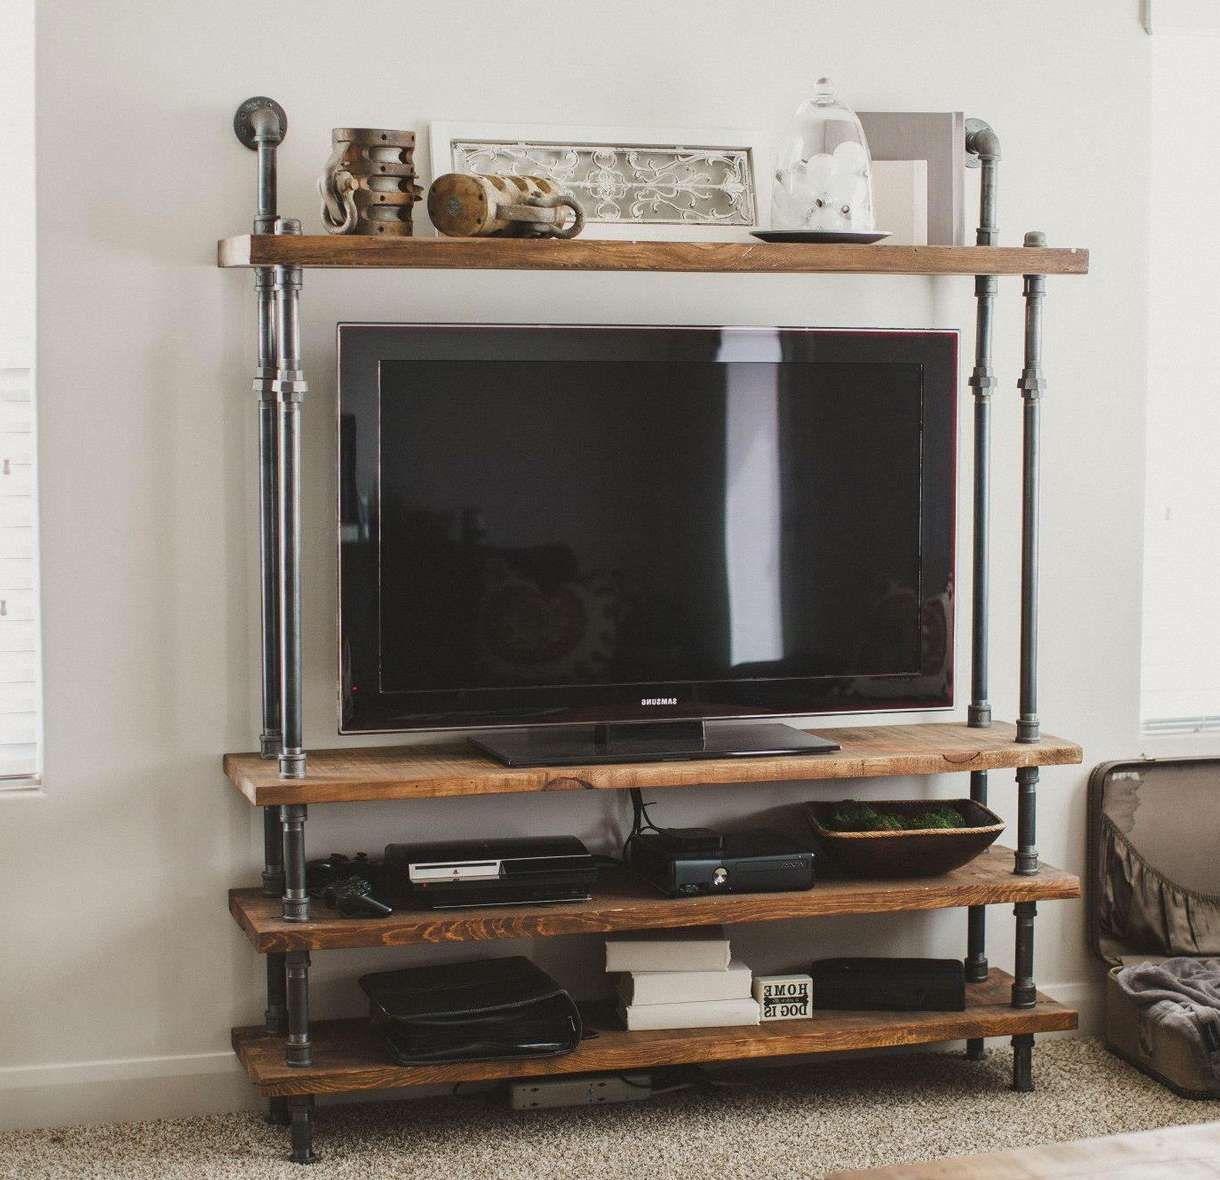 Cool Diy Industrial Pipe And Wood Combo Tv Stand With Shelves Of For Unique Tv Stands (View 2 of 15)